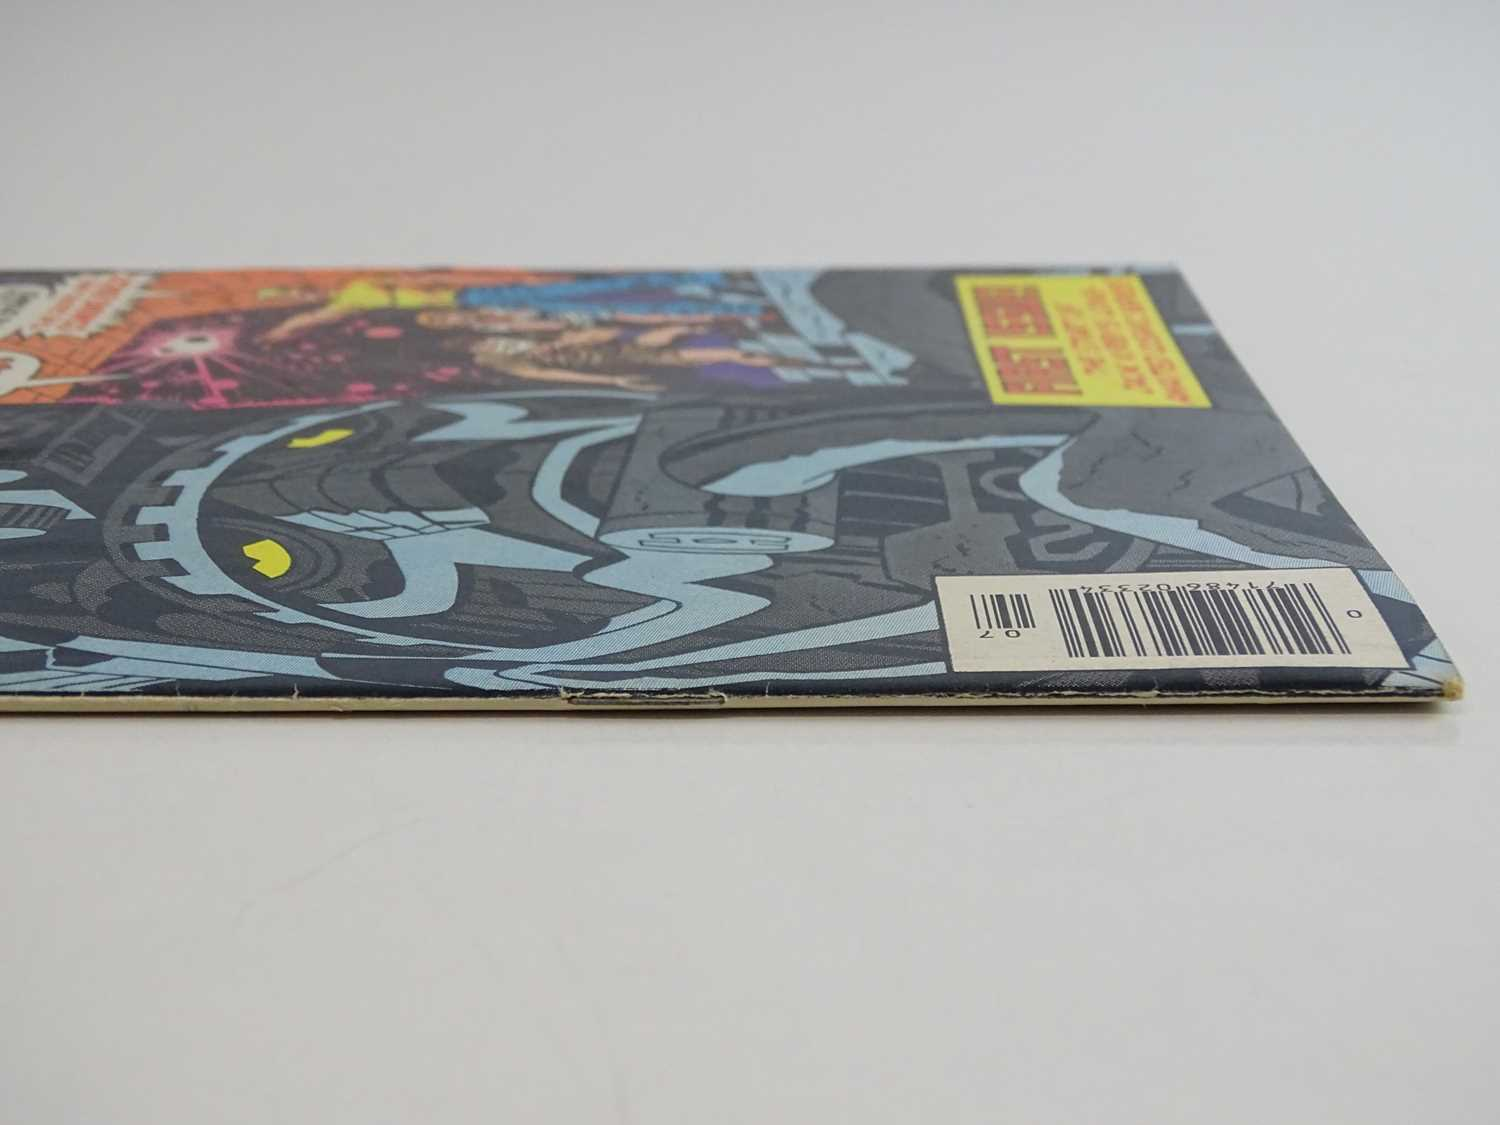 ETERNALS #1 - (1976 - MARVEL) - HOT Key book + Origin and First appearances of the Eternals (Ikaris, - Image 9 of 9